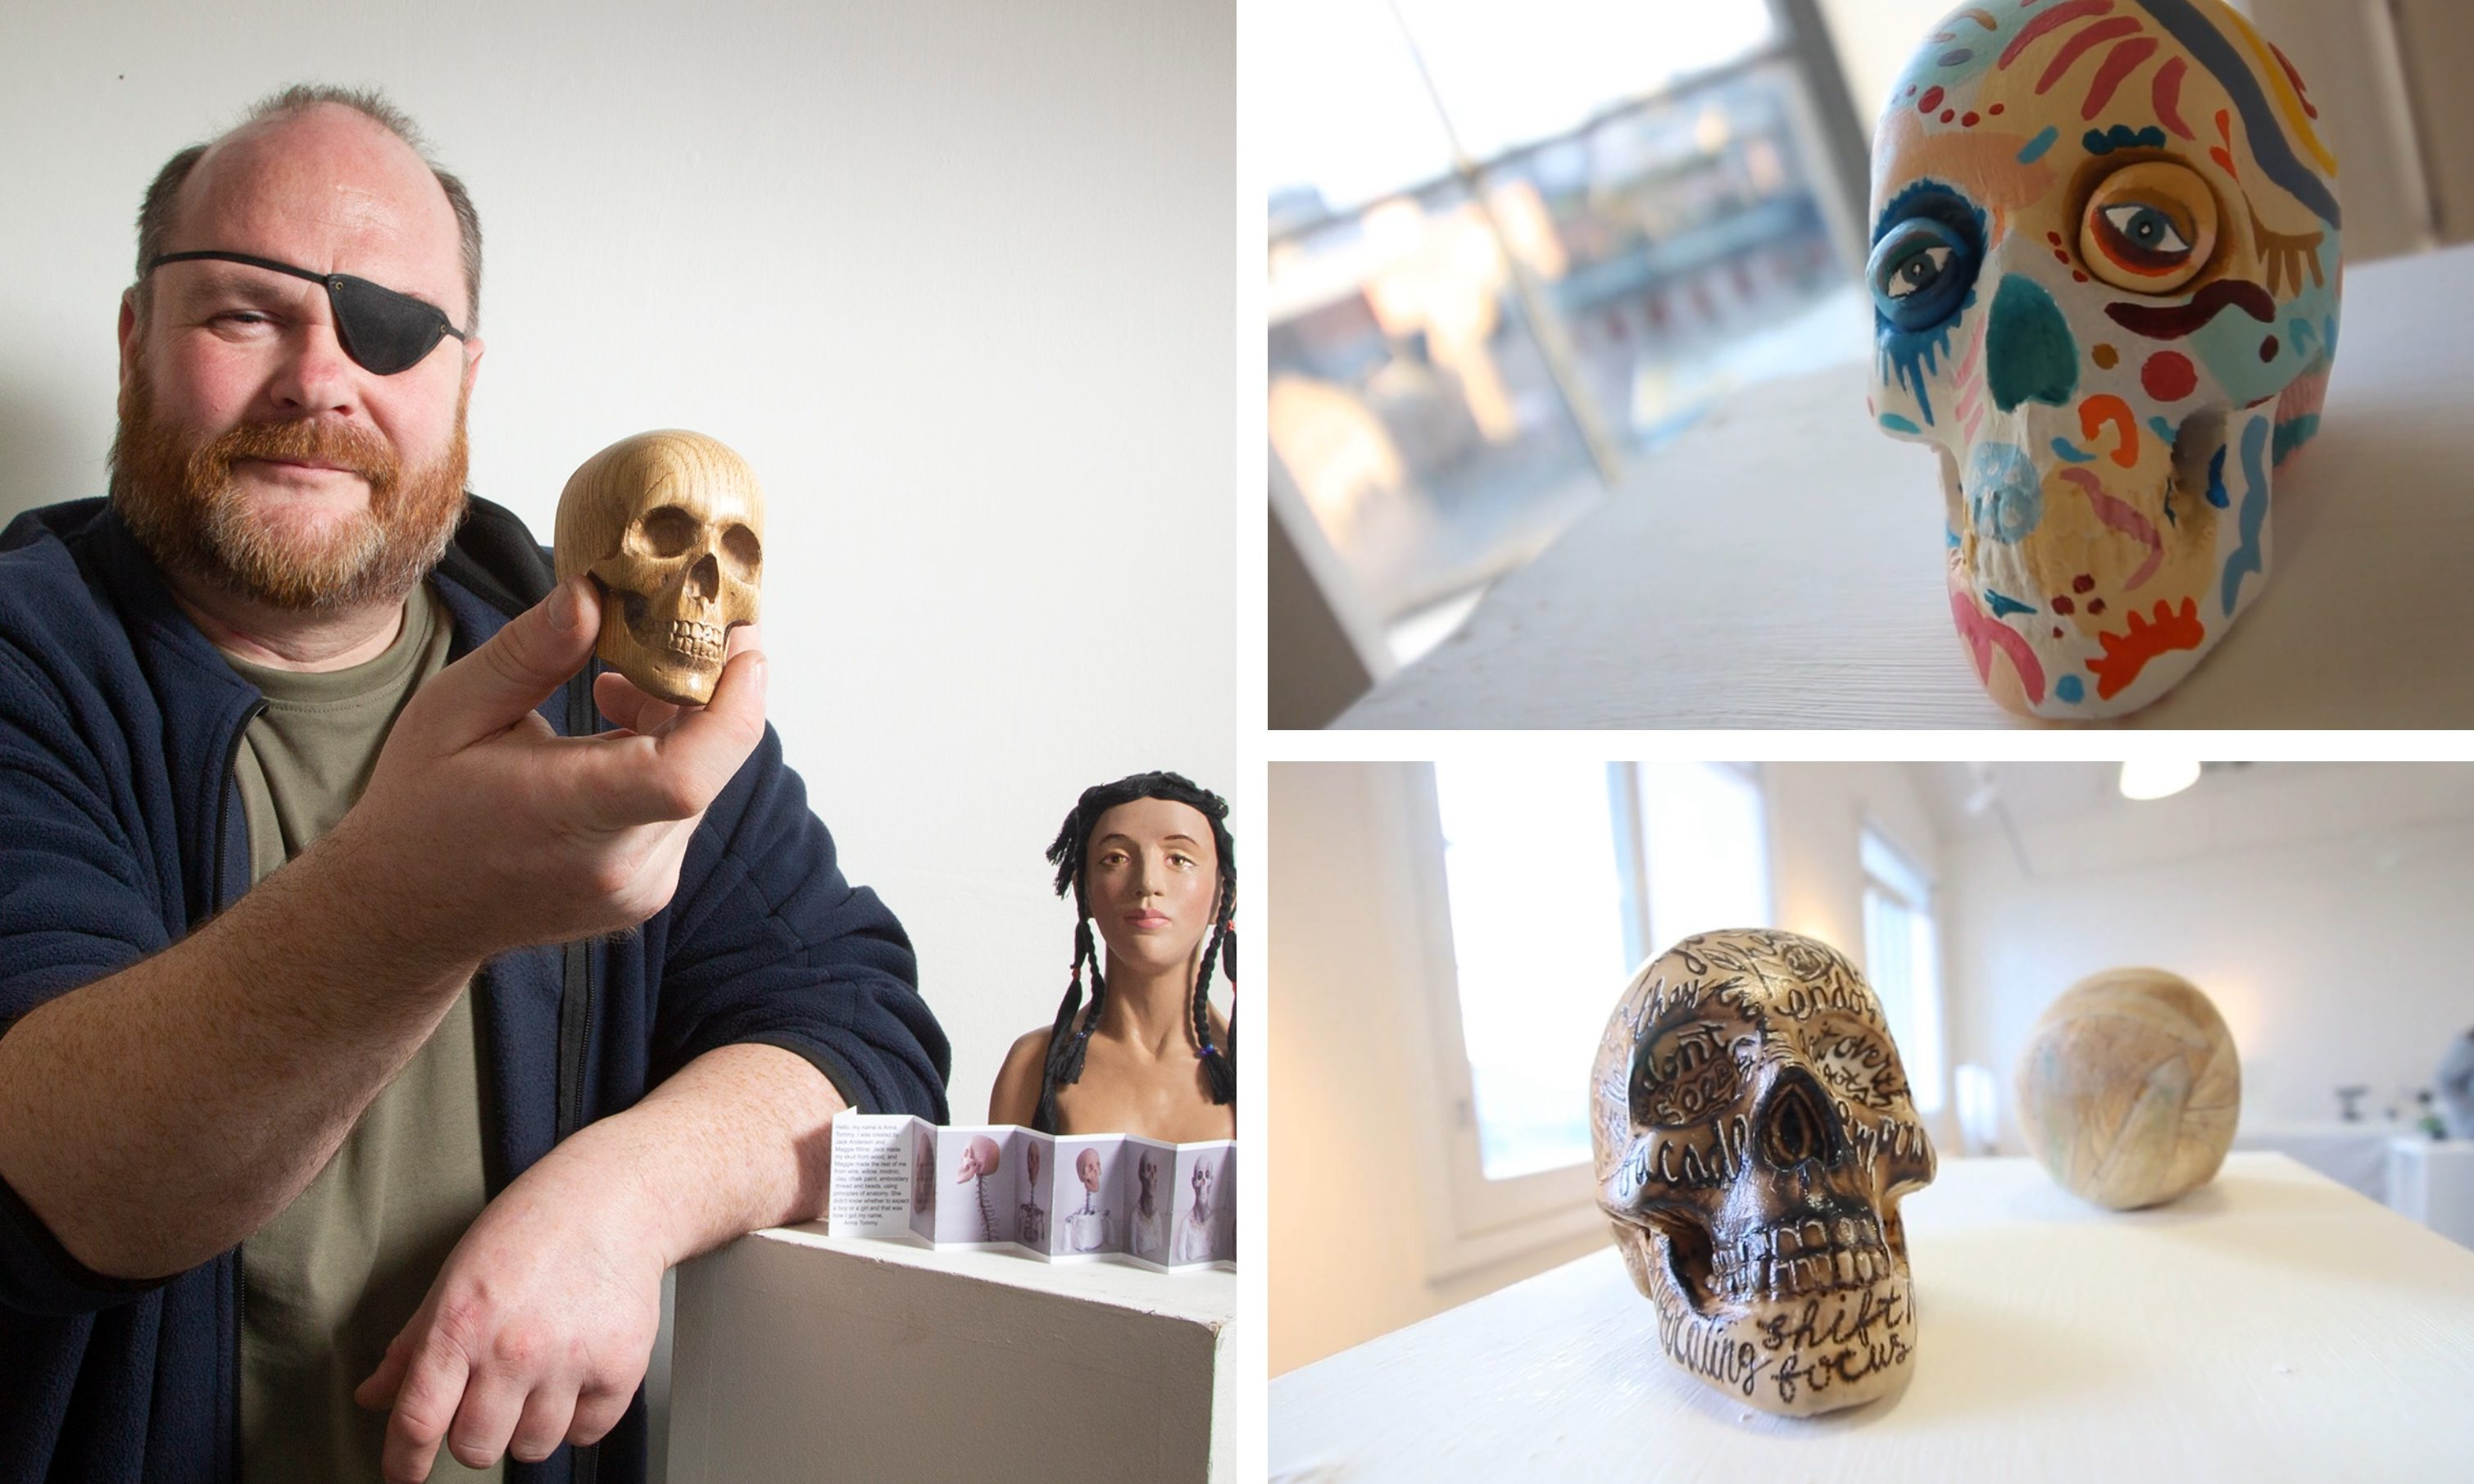 Jack Anderson, a wood turner, has carved 60 wooden skulls to exhibit and sell in aid of SAMH.